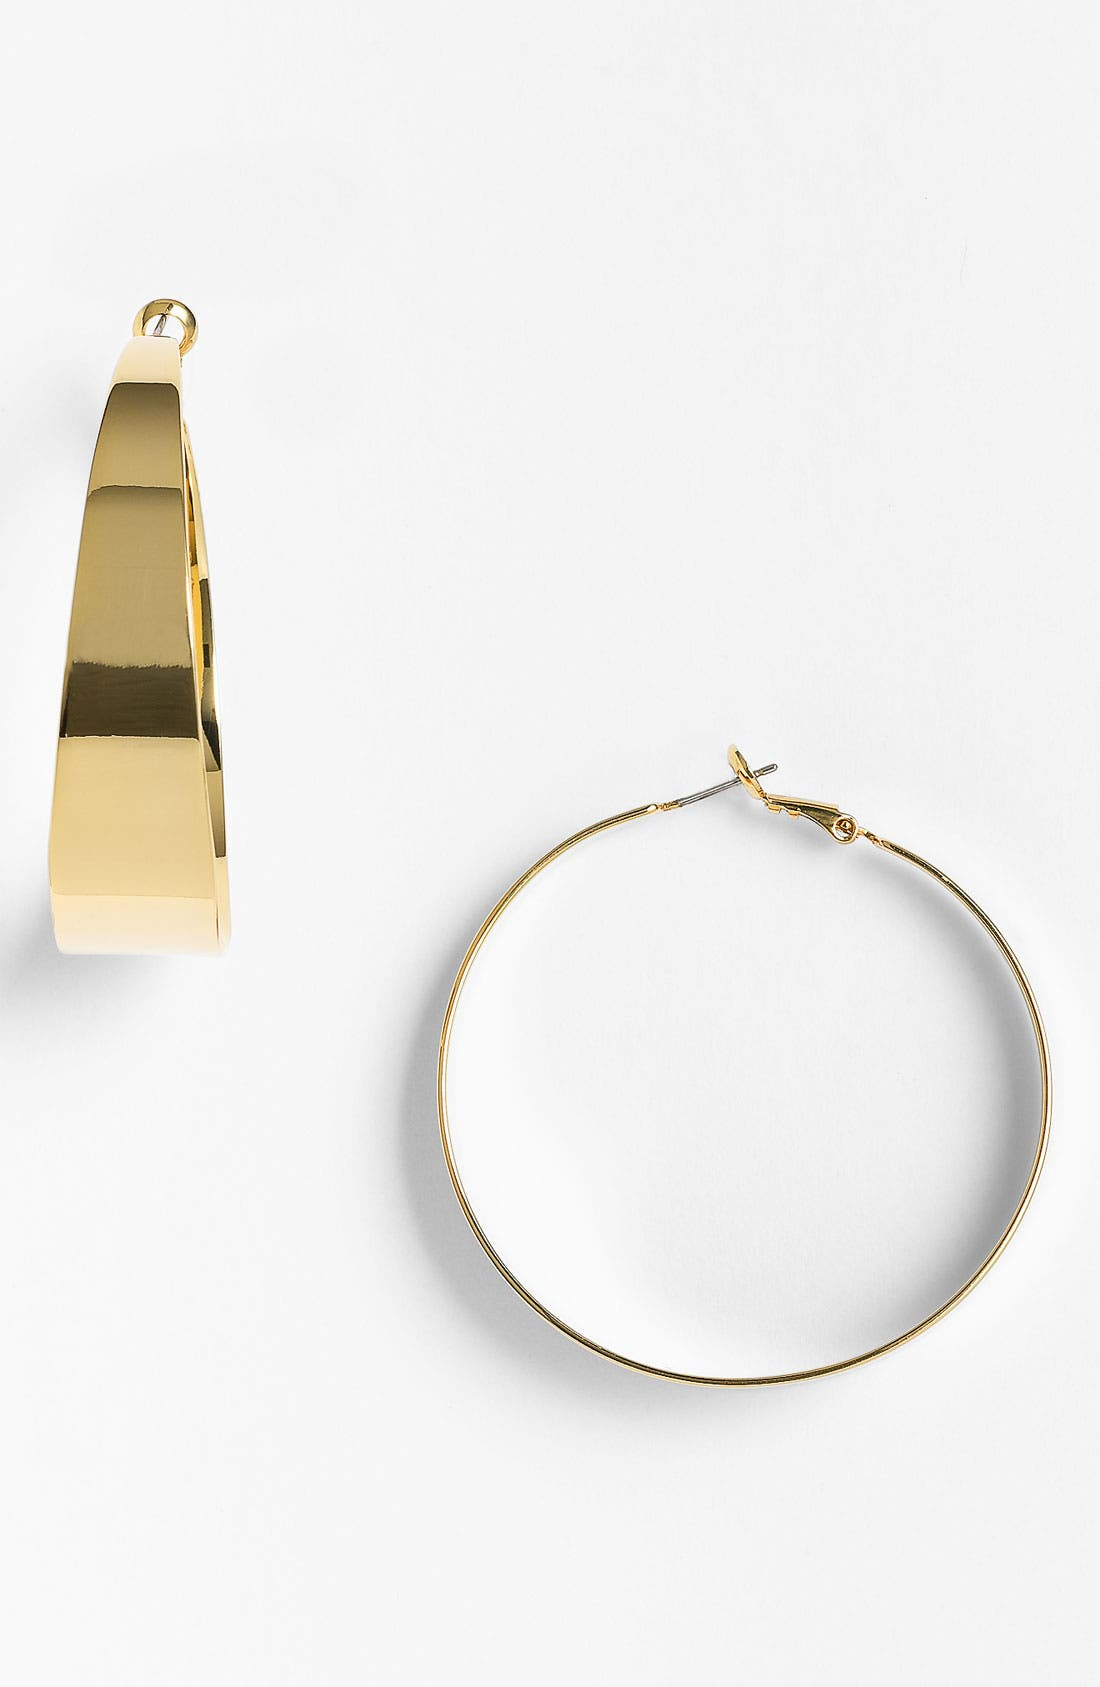 Main Image - Vince Camuto 'Basics' Tapered Hoop Earrings